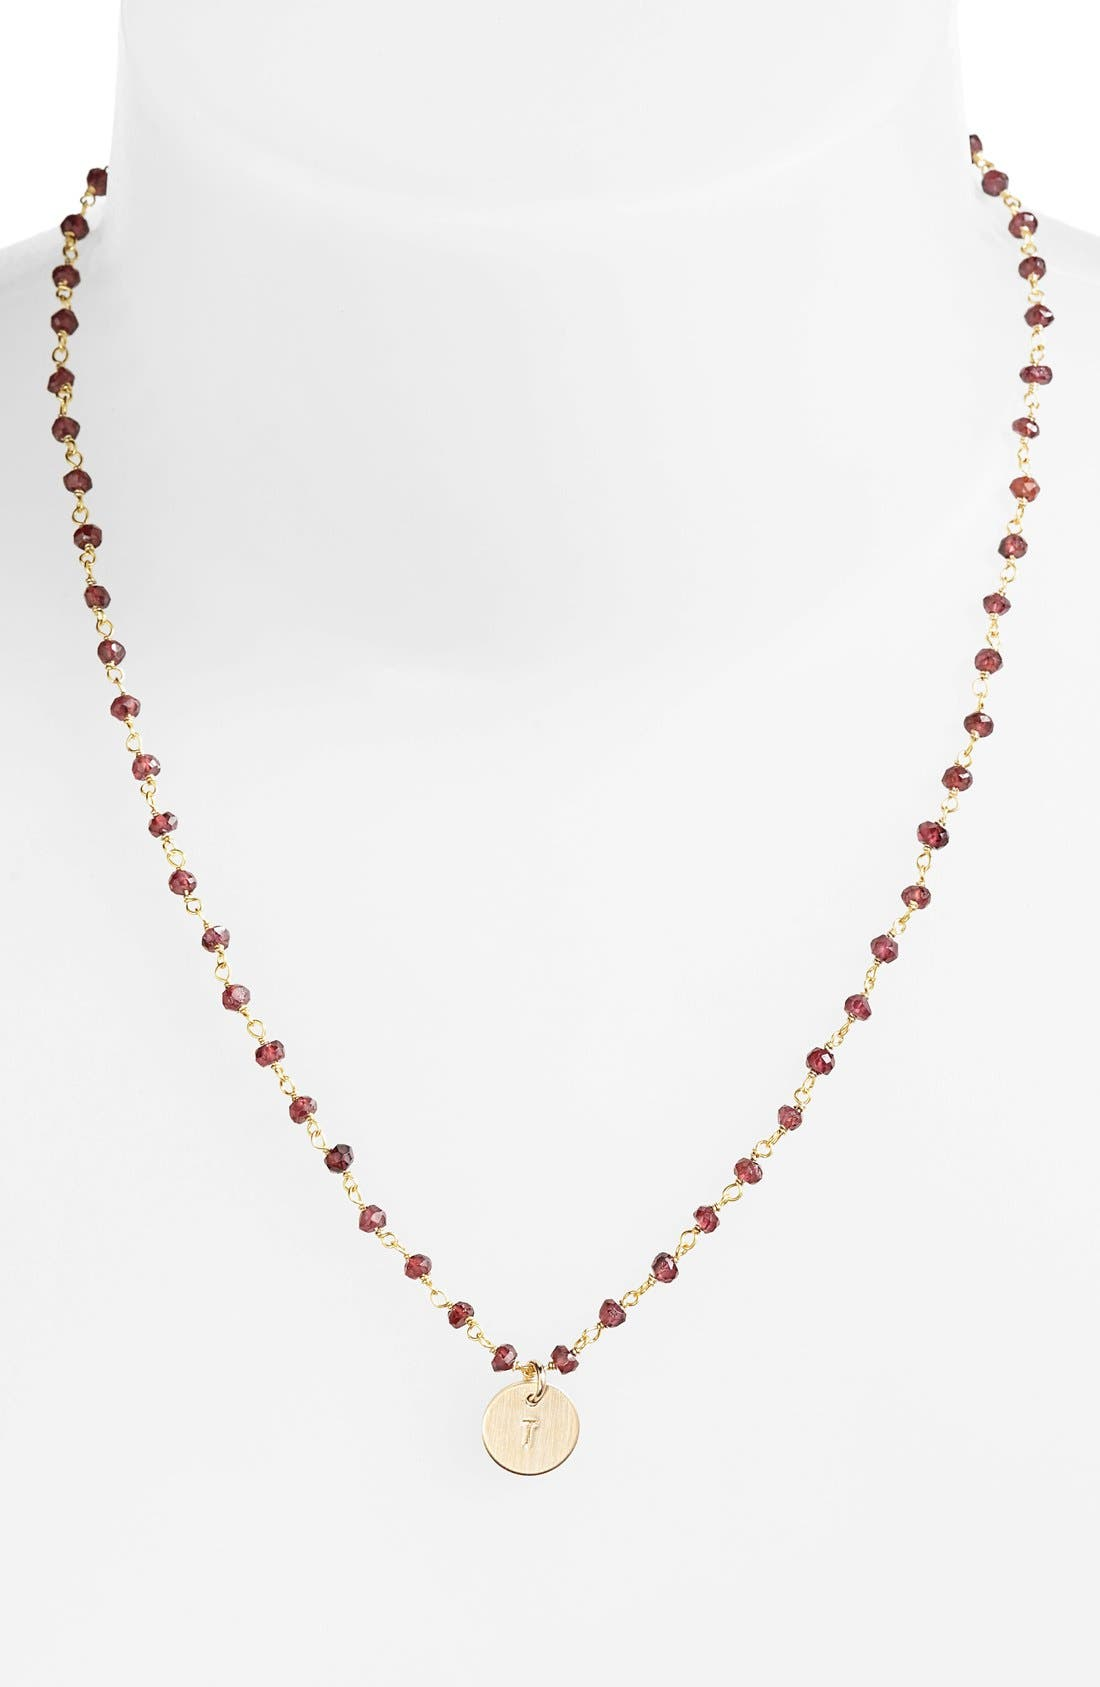 Alternate Image 1 Selected - Nashelle 14k-Gold Fill Mini Initial Disc Garnet Chain Necklace